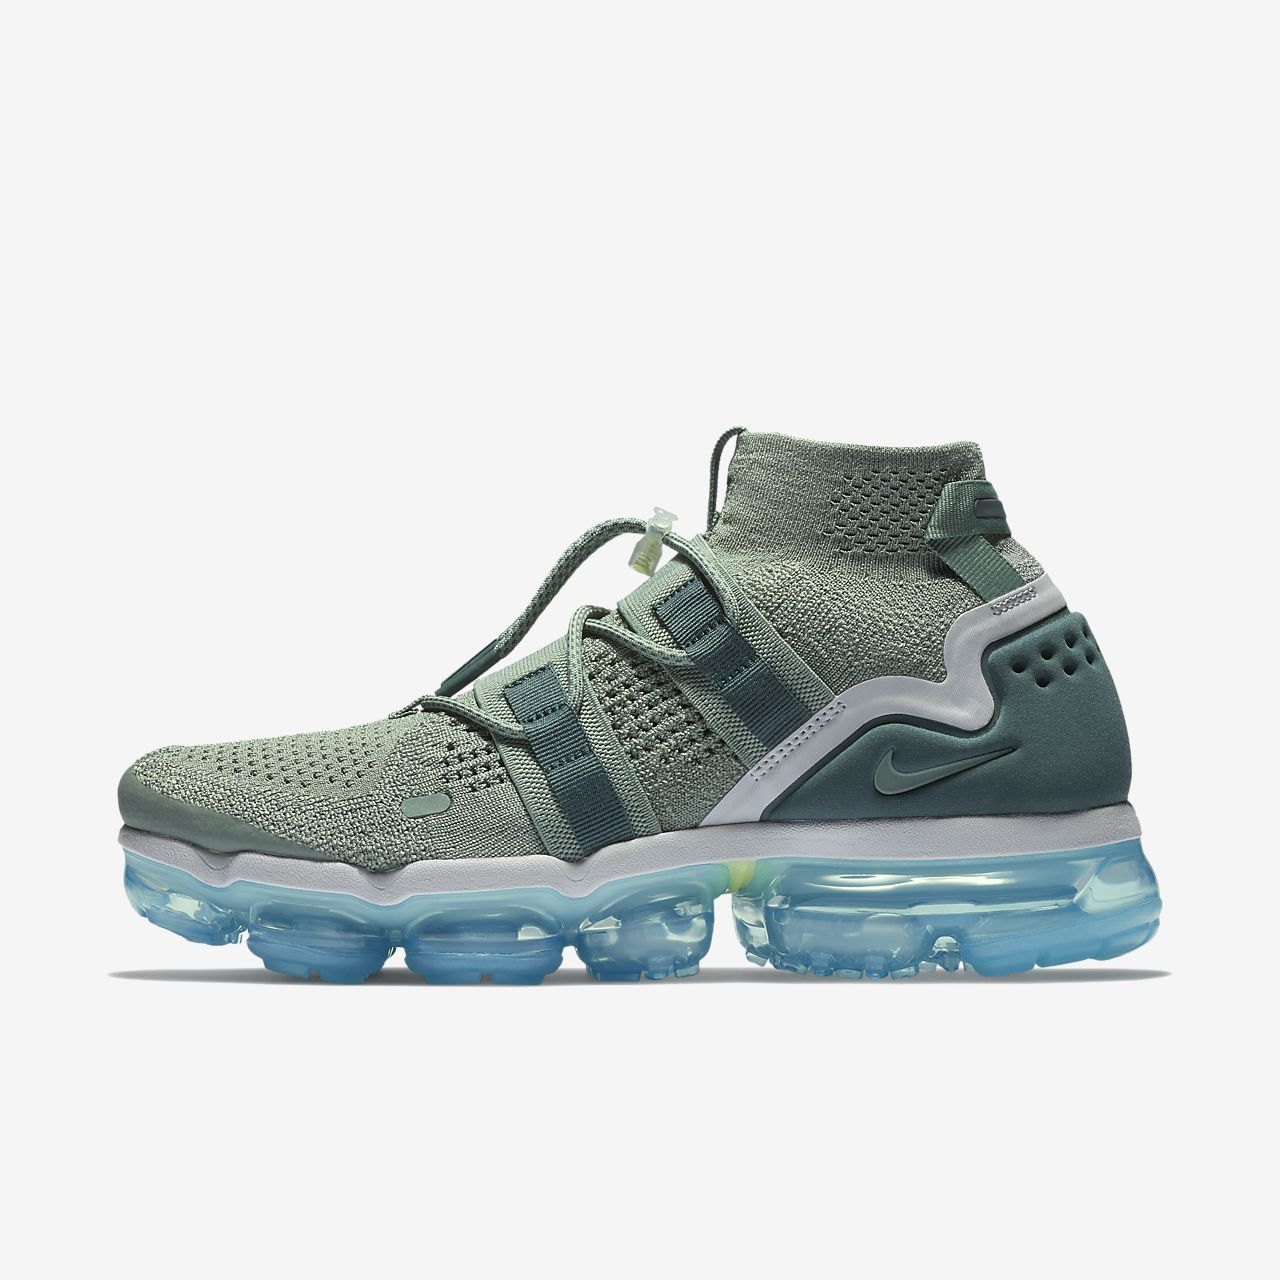 pretty nice c5ae3 b4ed7 Nike Air VaporMax Flyknit Utility Running Shoe Clay Green Barely Grey Neo  Turquoise Faded Spruce Style  AH6834-300